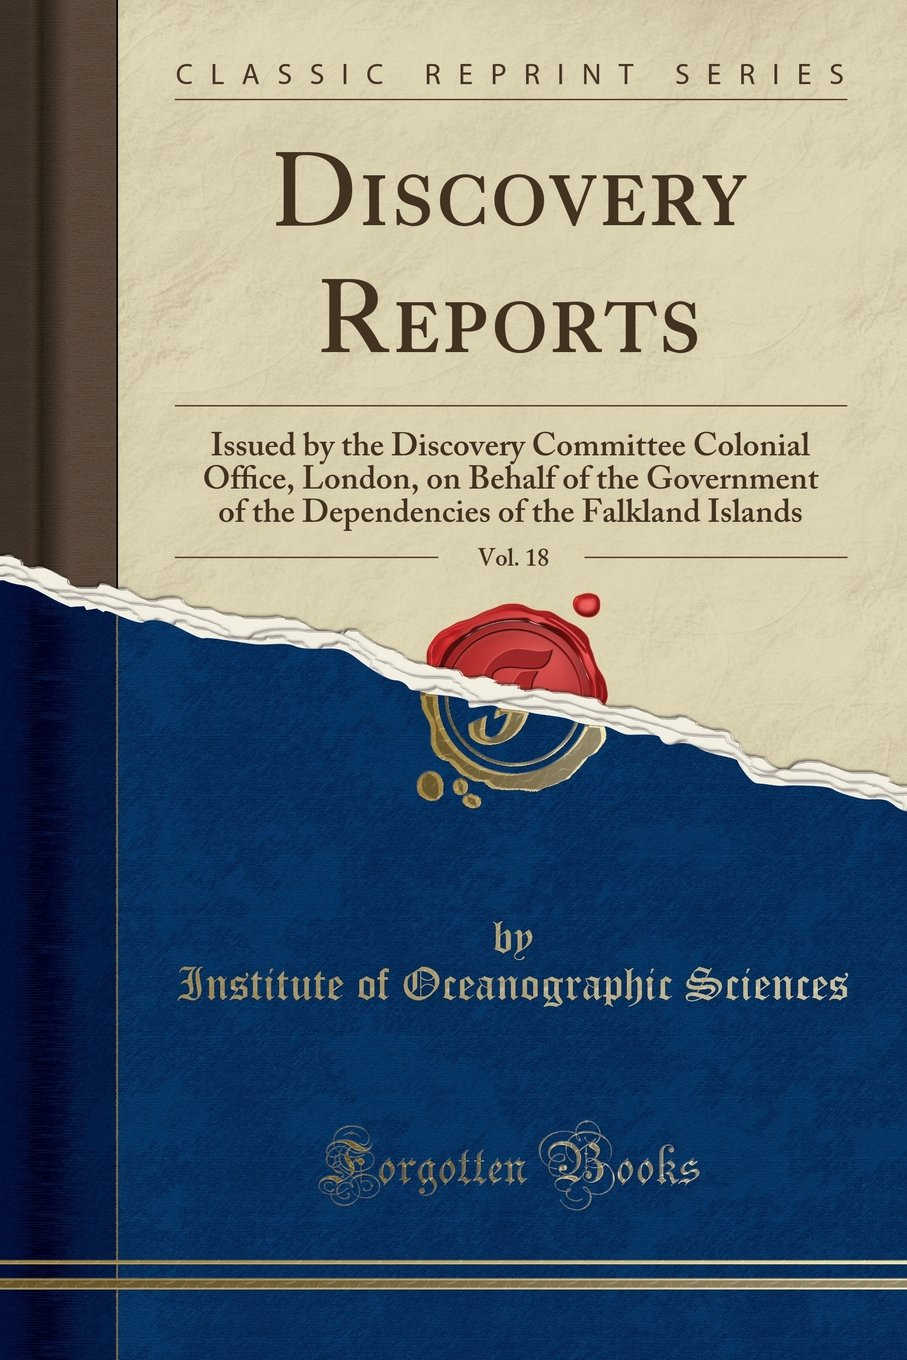 Download Discovery Reports, Vol. 18: Issued by the Discovery Committee Colonial Office, London, on Behalf of the Government of the Dependencies of the Falkland Islands (Classic Reprint) ebook